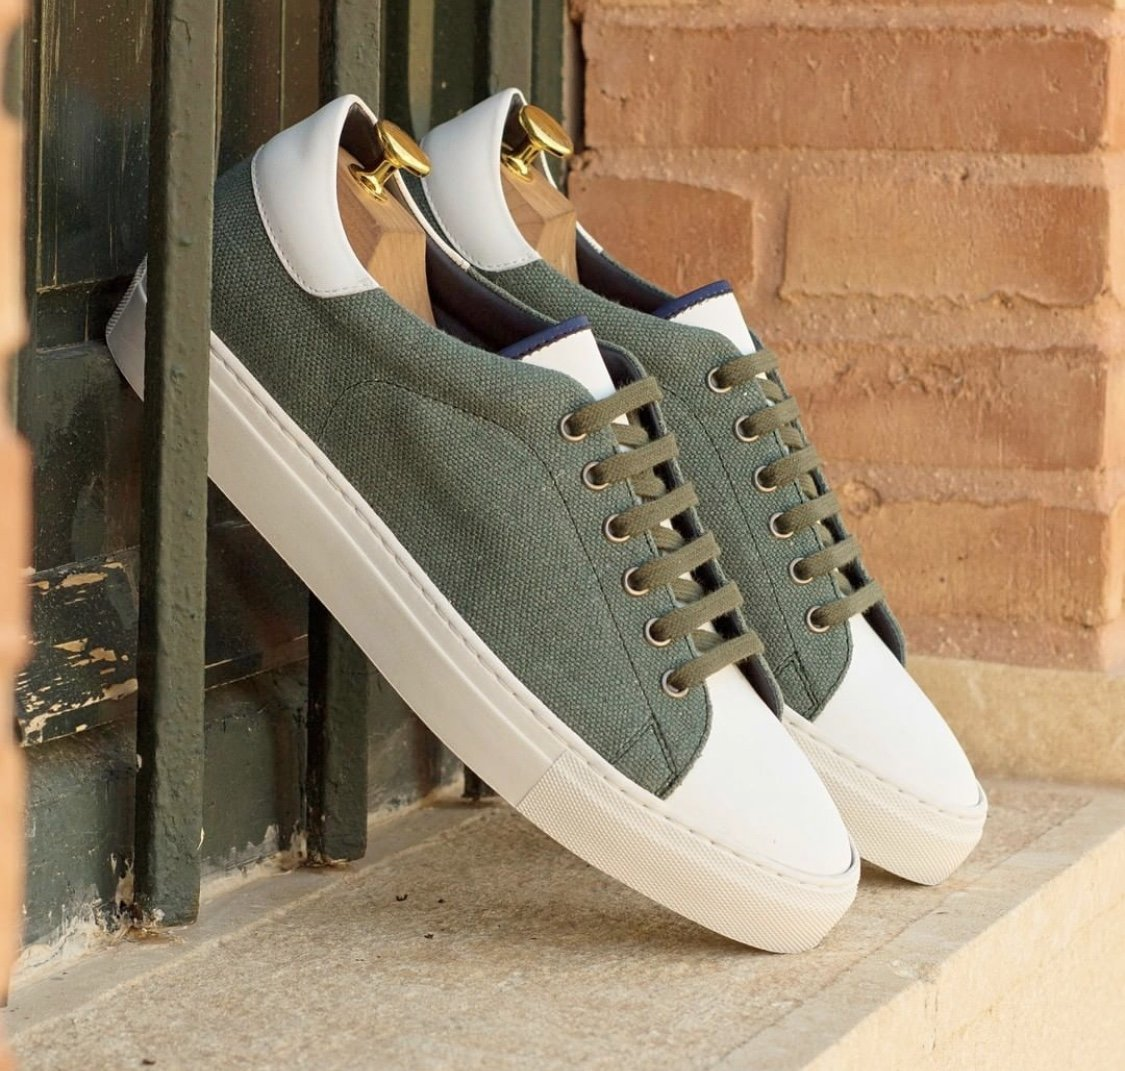 Designing Olive Green Custom Casual Shoes for Groomsmen party